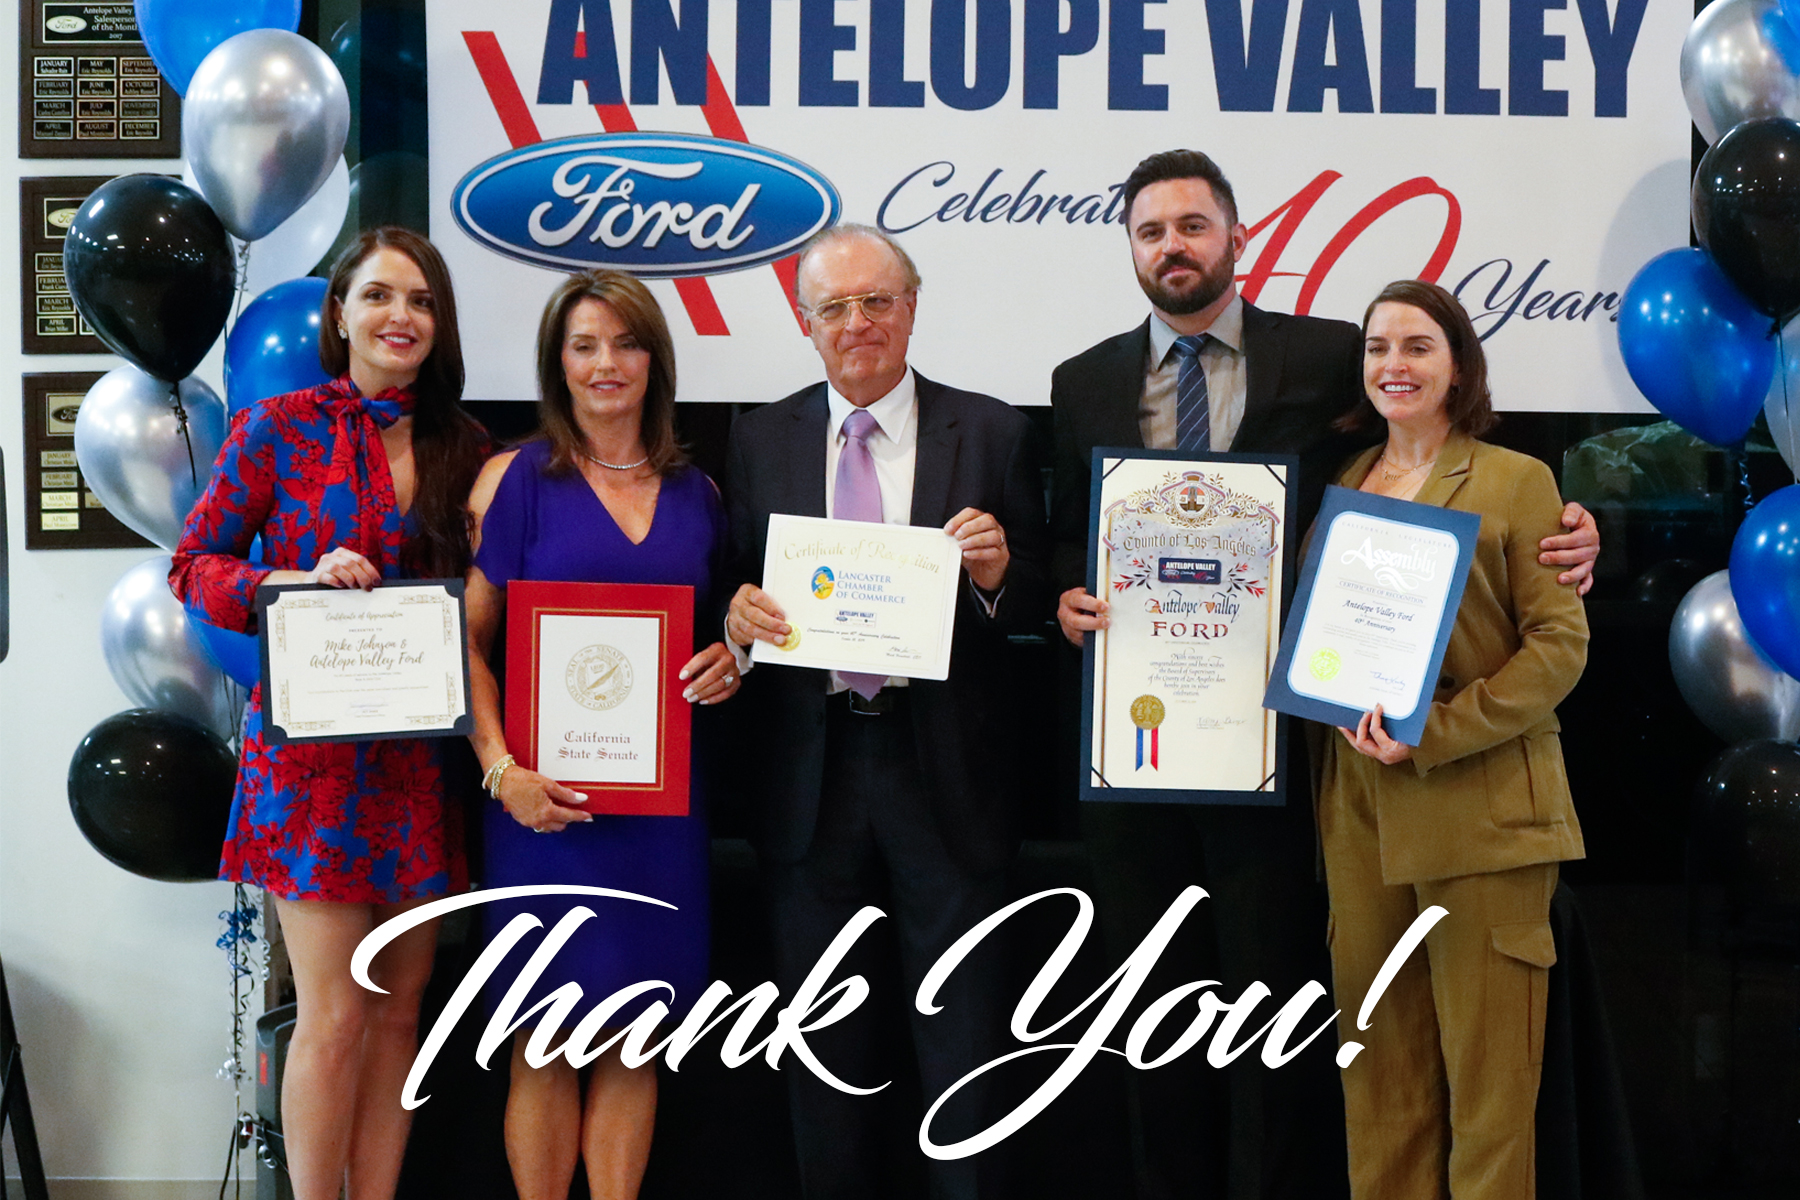 Mike Johnson and Antelope Valley Ford Celebrate 40 Years of Service in Lancaster, CA